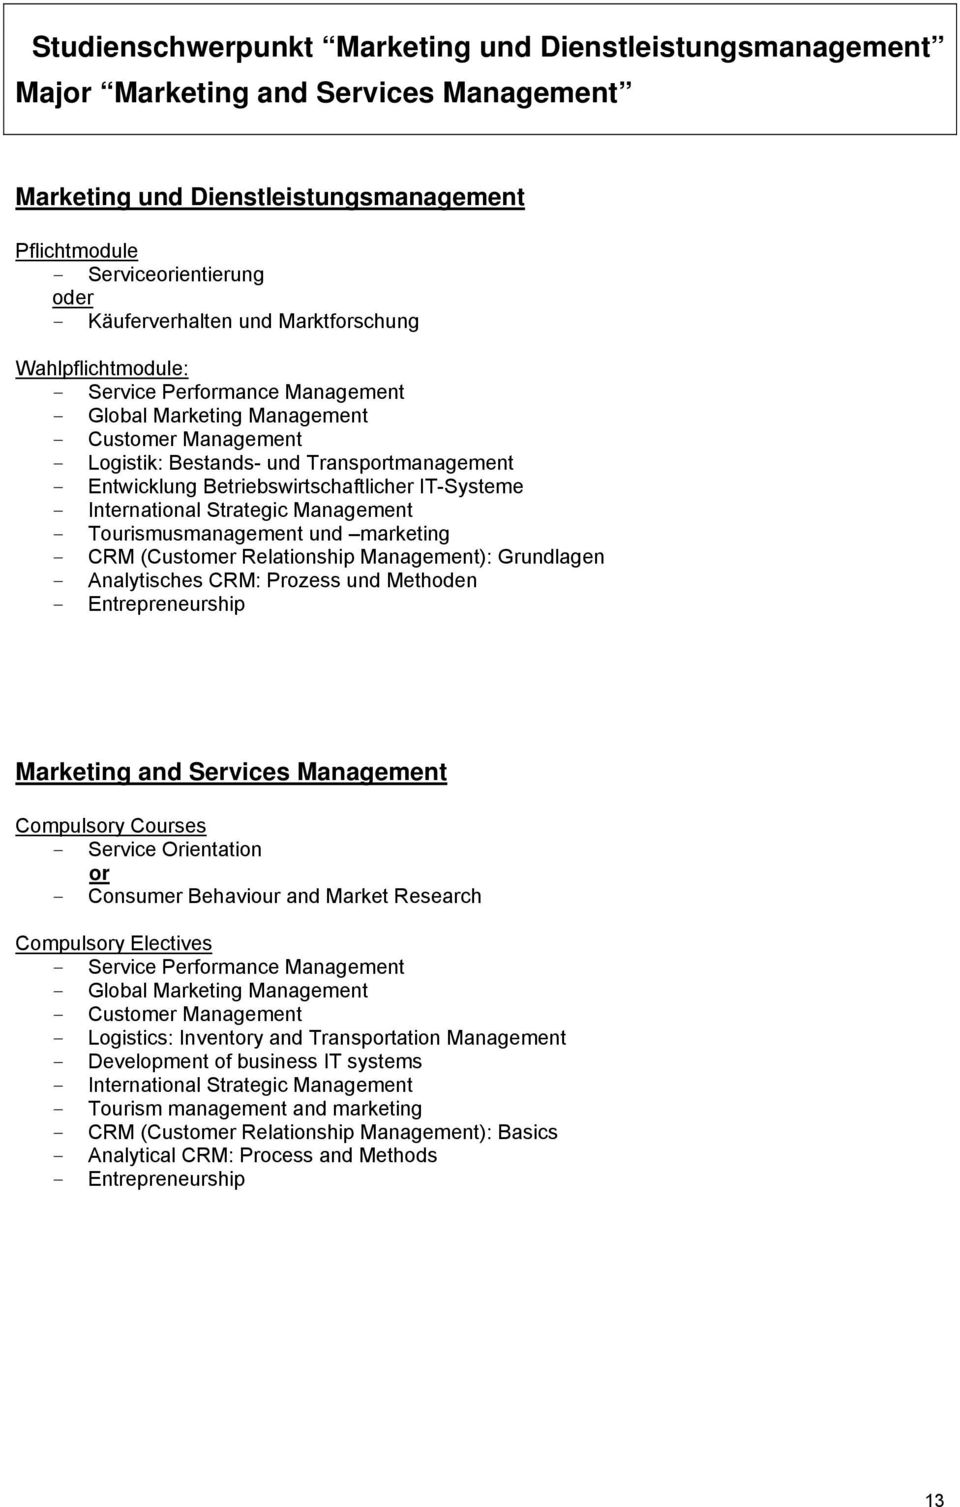 Betriebswirtschaftlicher IT-Systeme - International Strategic Management - Tourismusmanagement und marketing - CRM (Customer Relationship Management): Grundlagen - Analytisches CRM: Prozess und